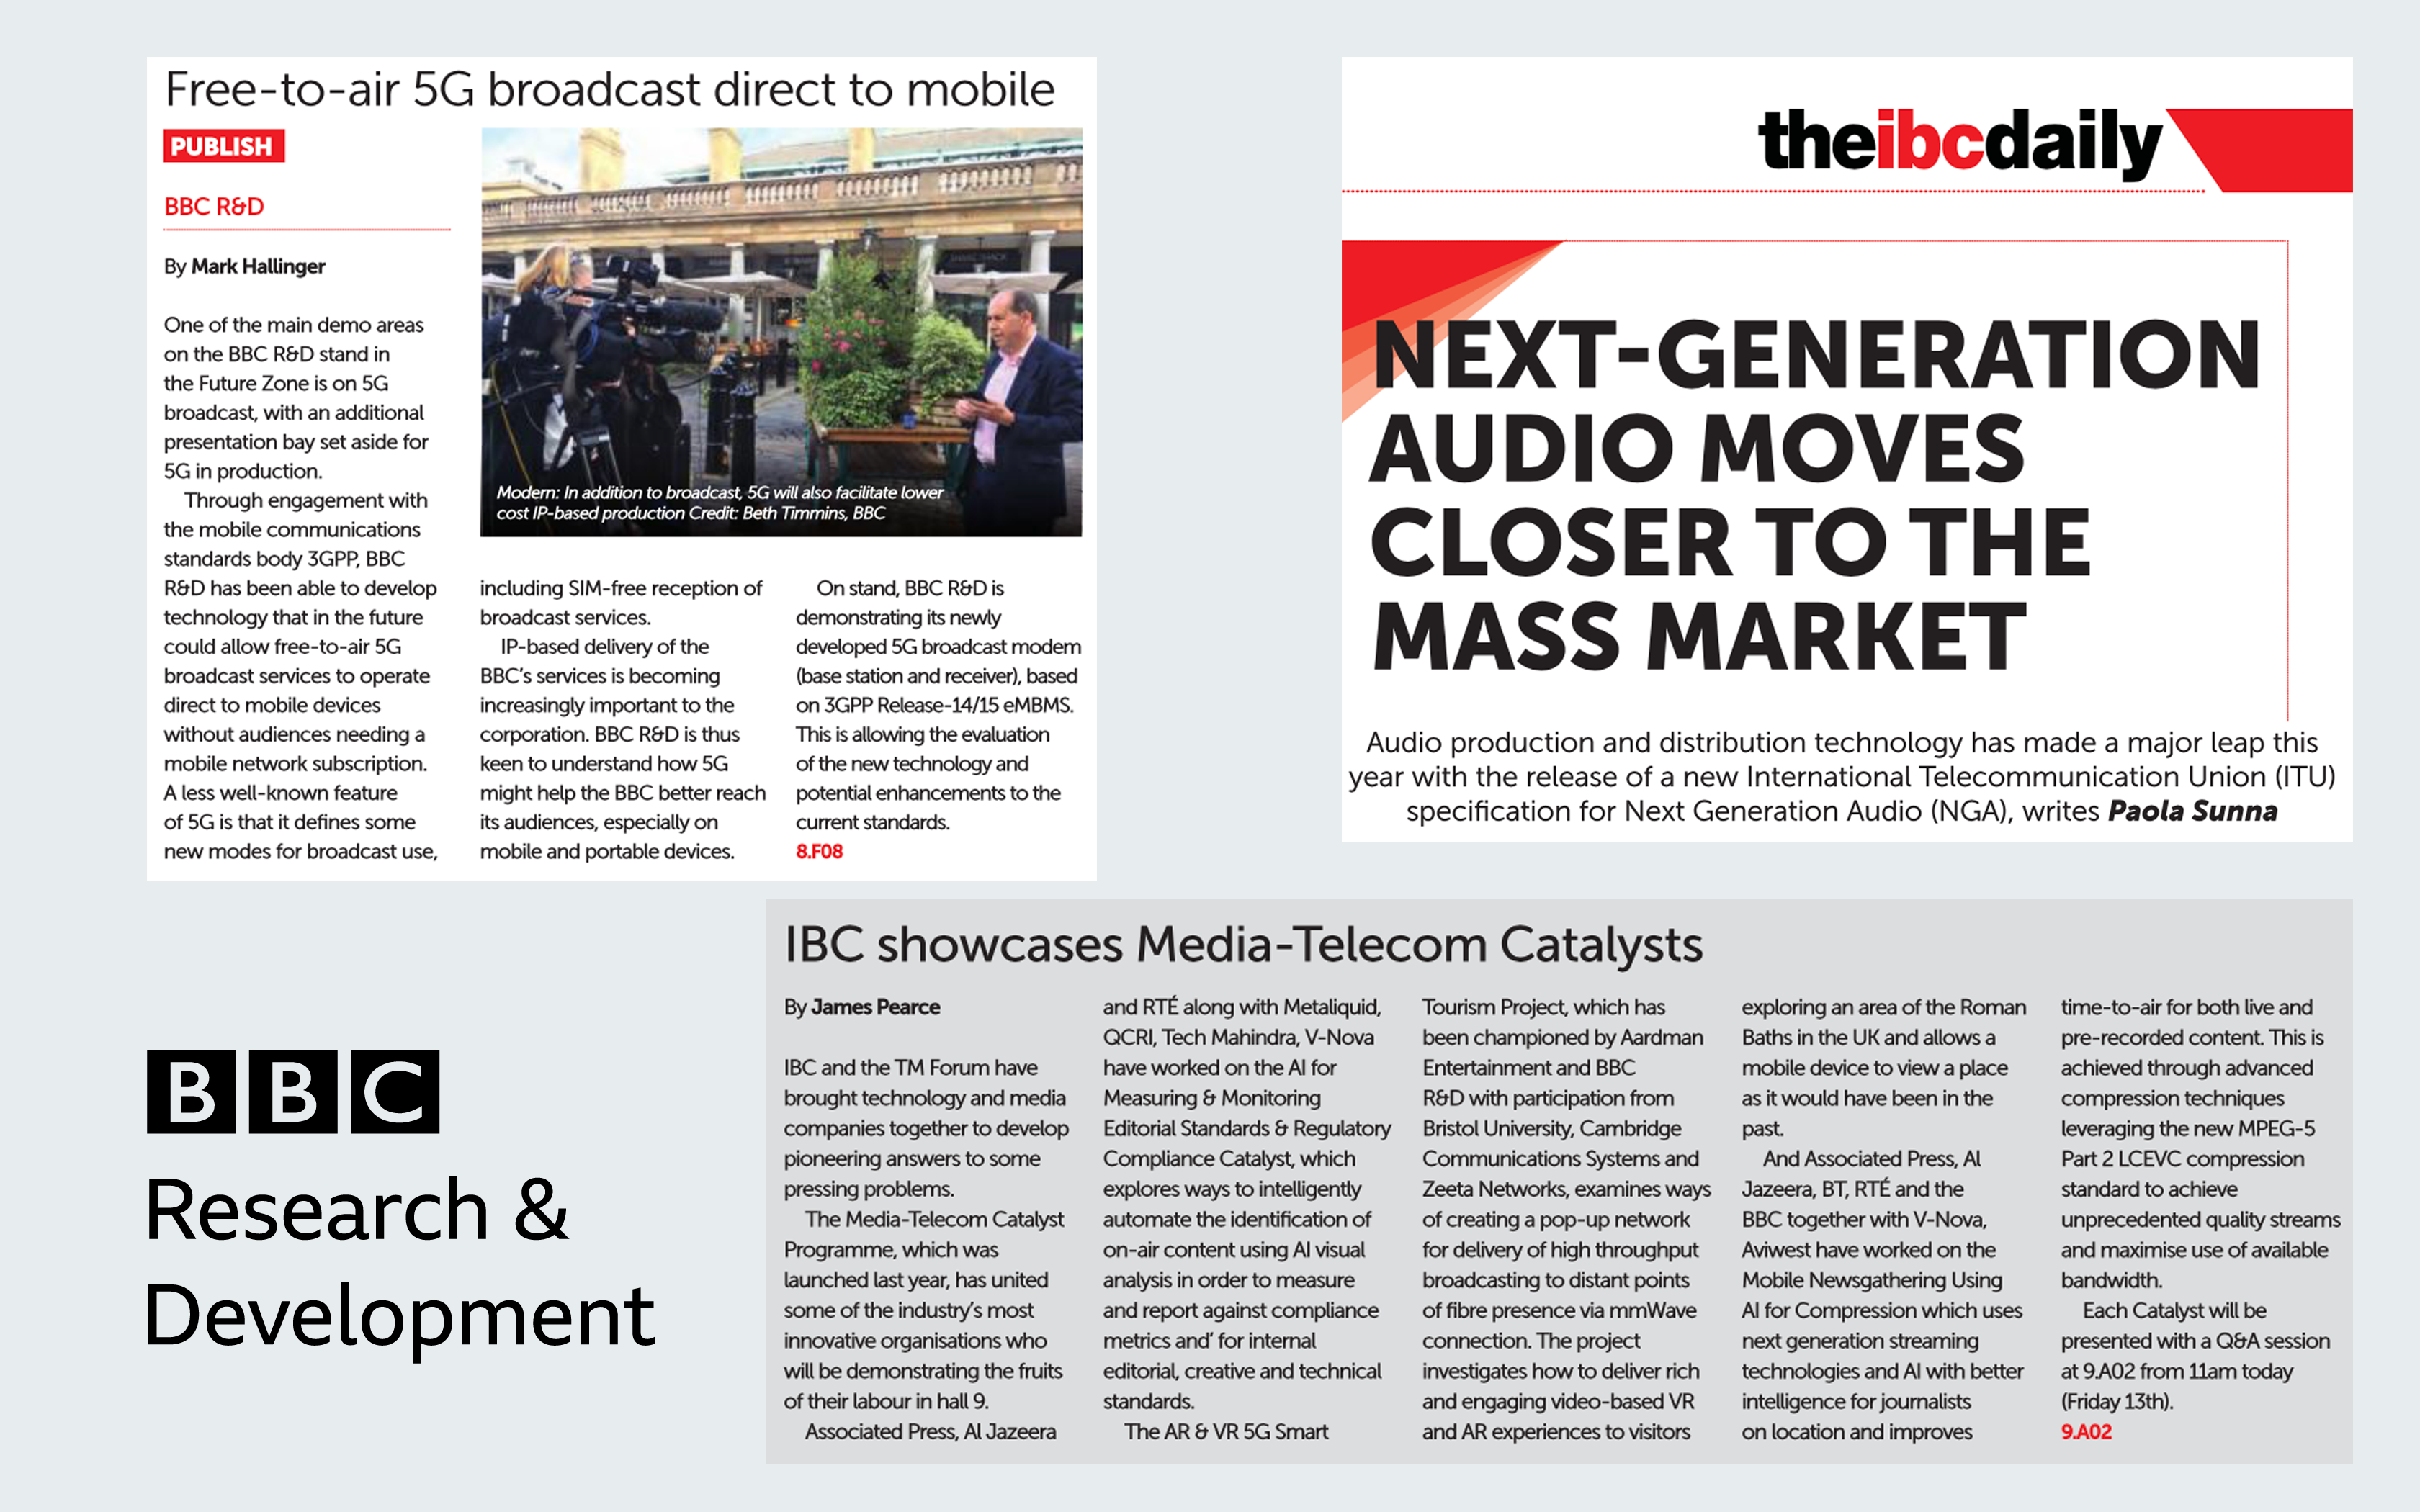 Today's IBC Daily articles.